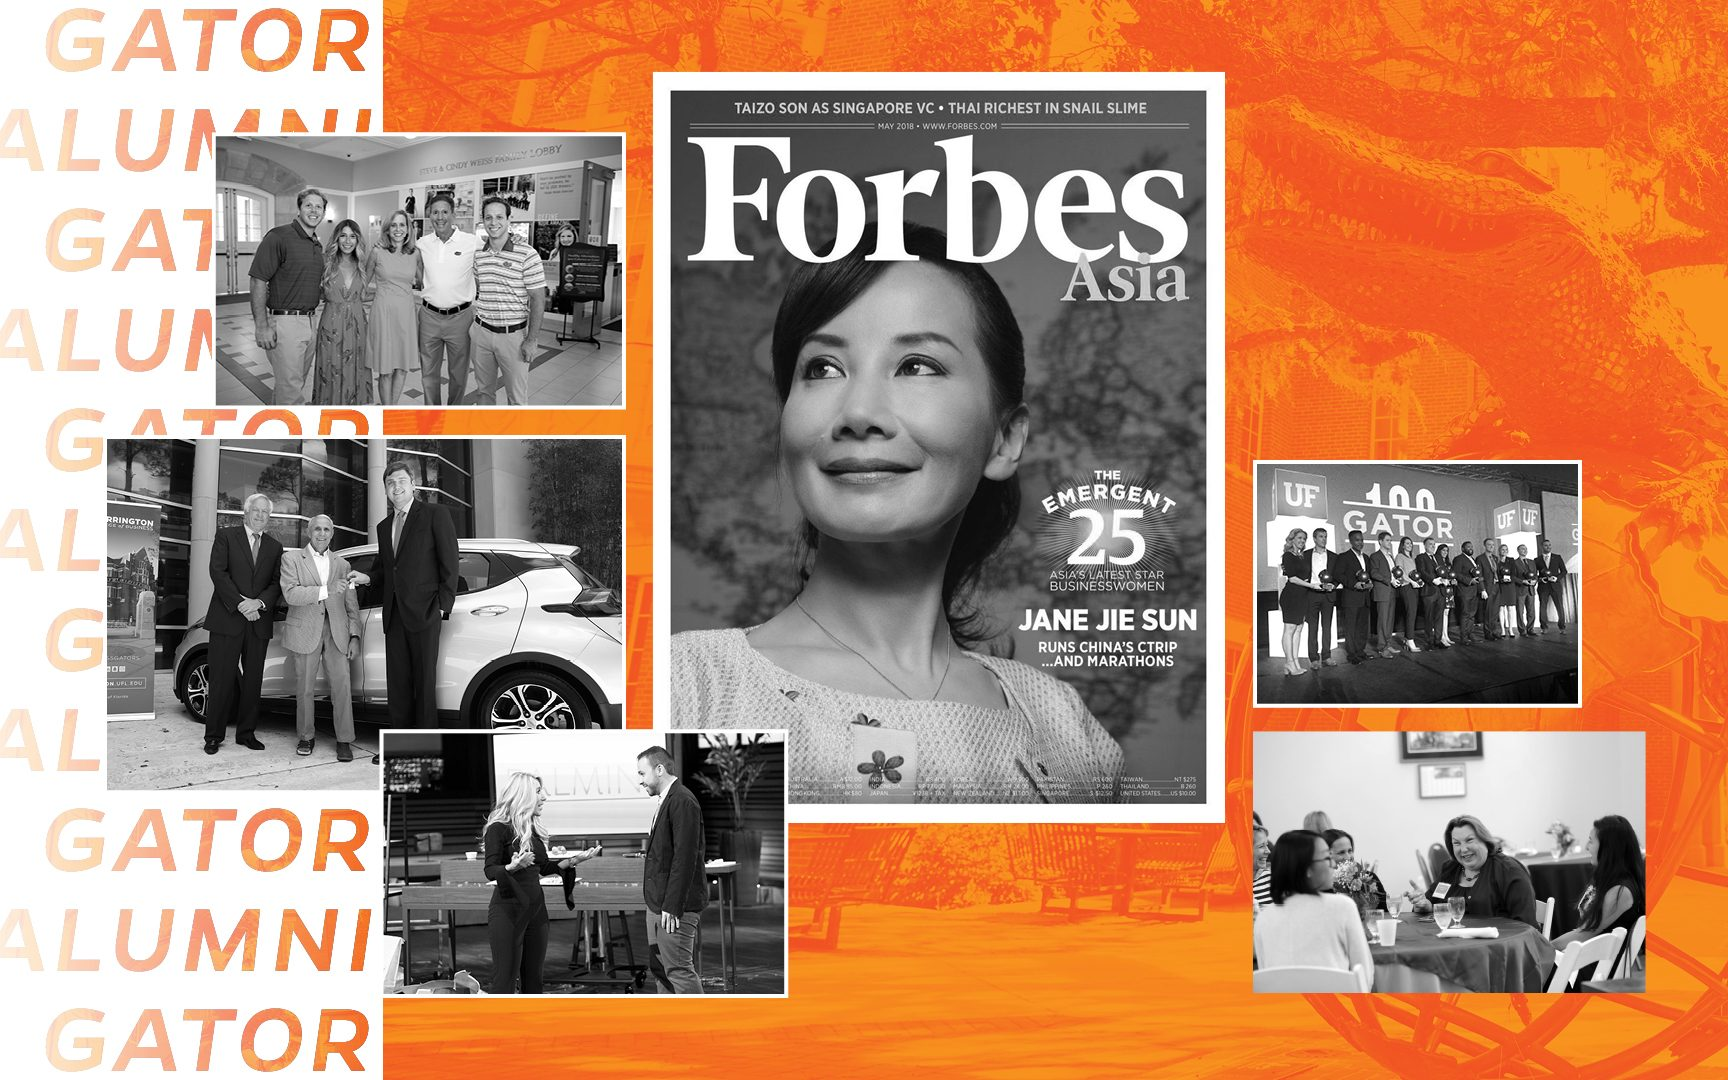 Features Warrington alumni Jane Sun, Alfonso Tejada, Steve Weiss, Andrew Starling, Barbara Jean Raskin and the 2018 Gator 100 winners with an orange background and the Gator Ubiquity Statue.